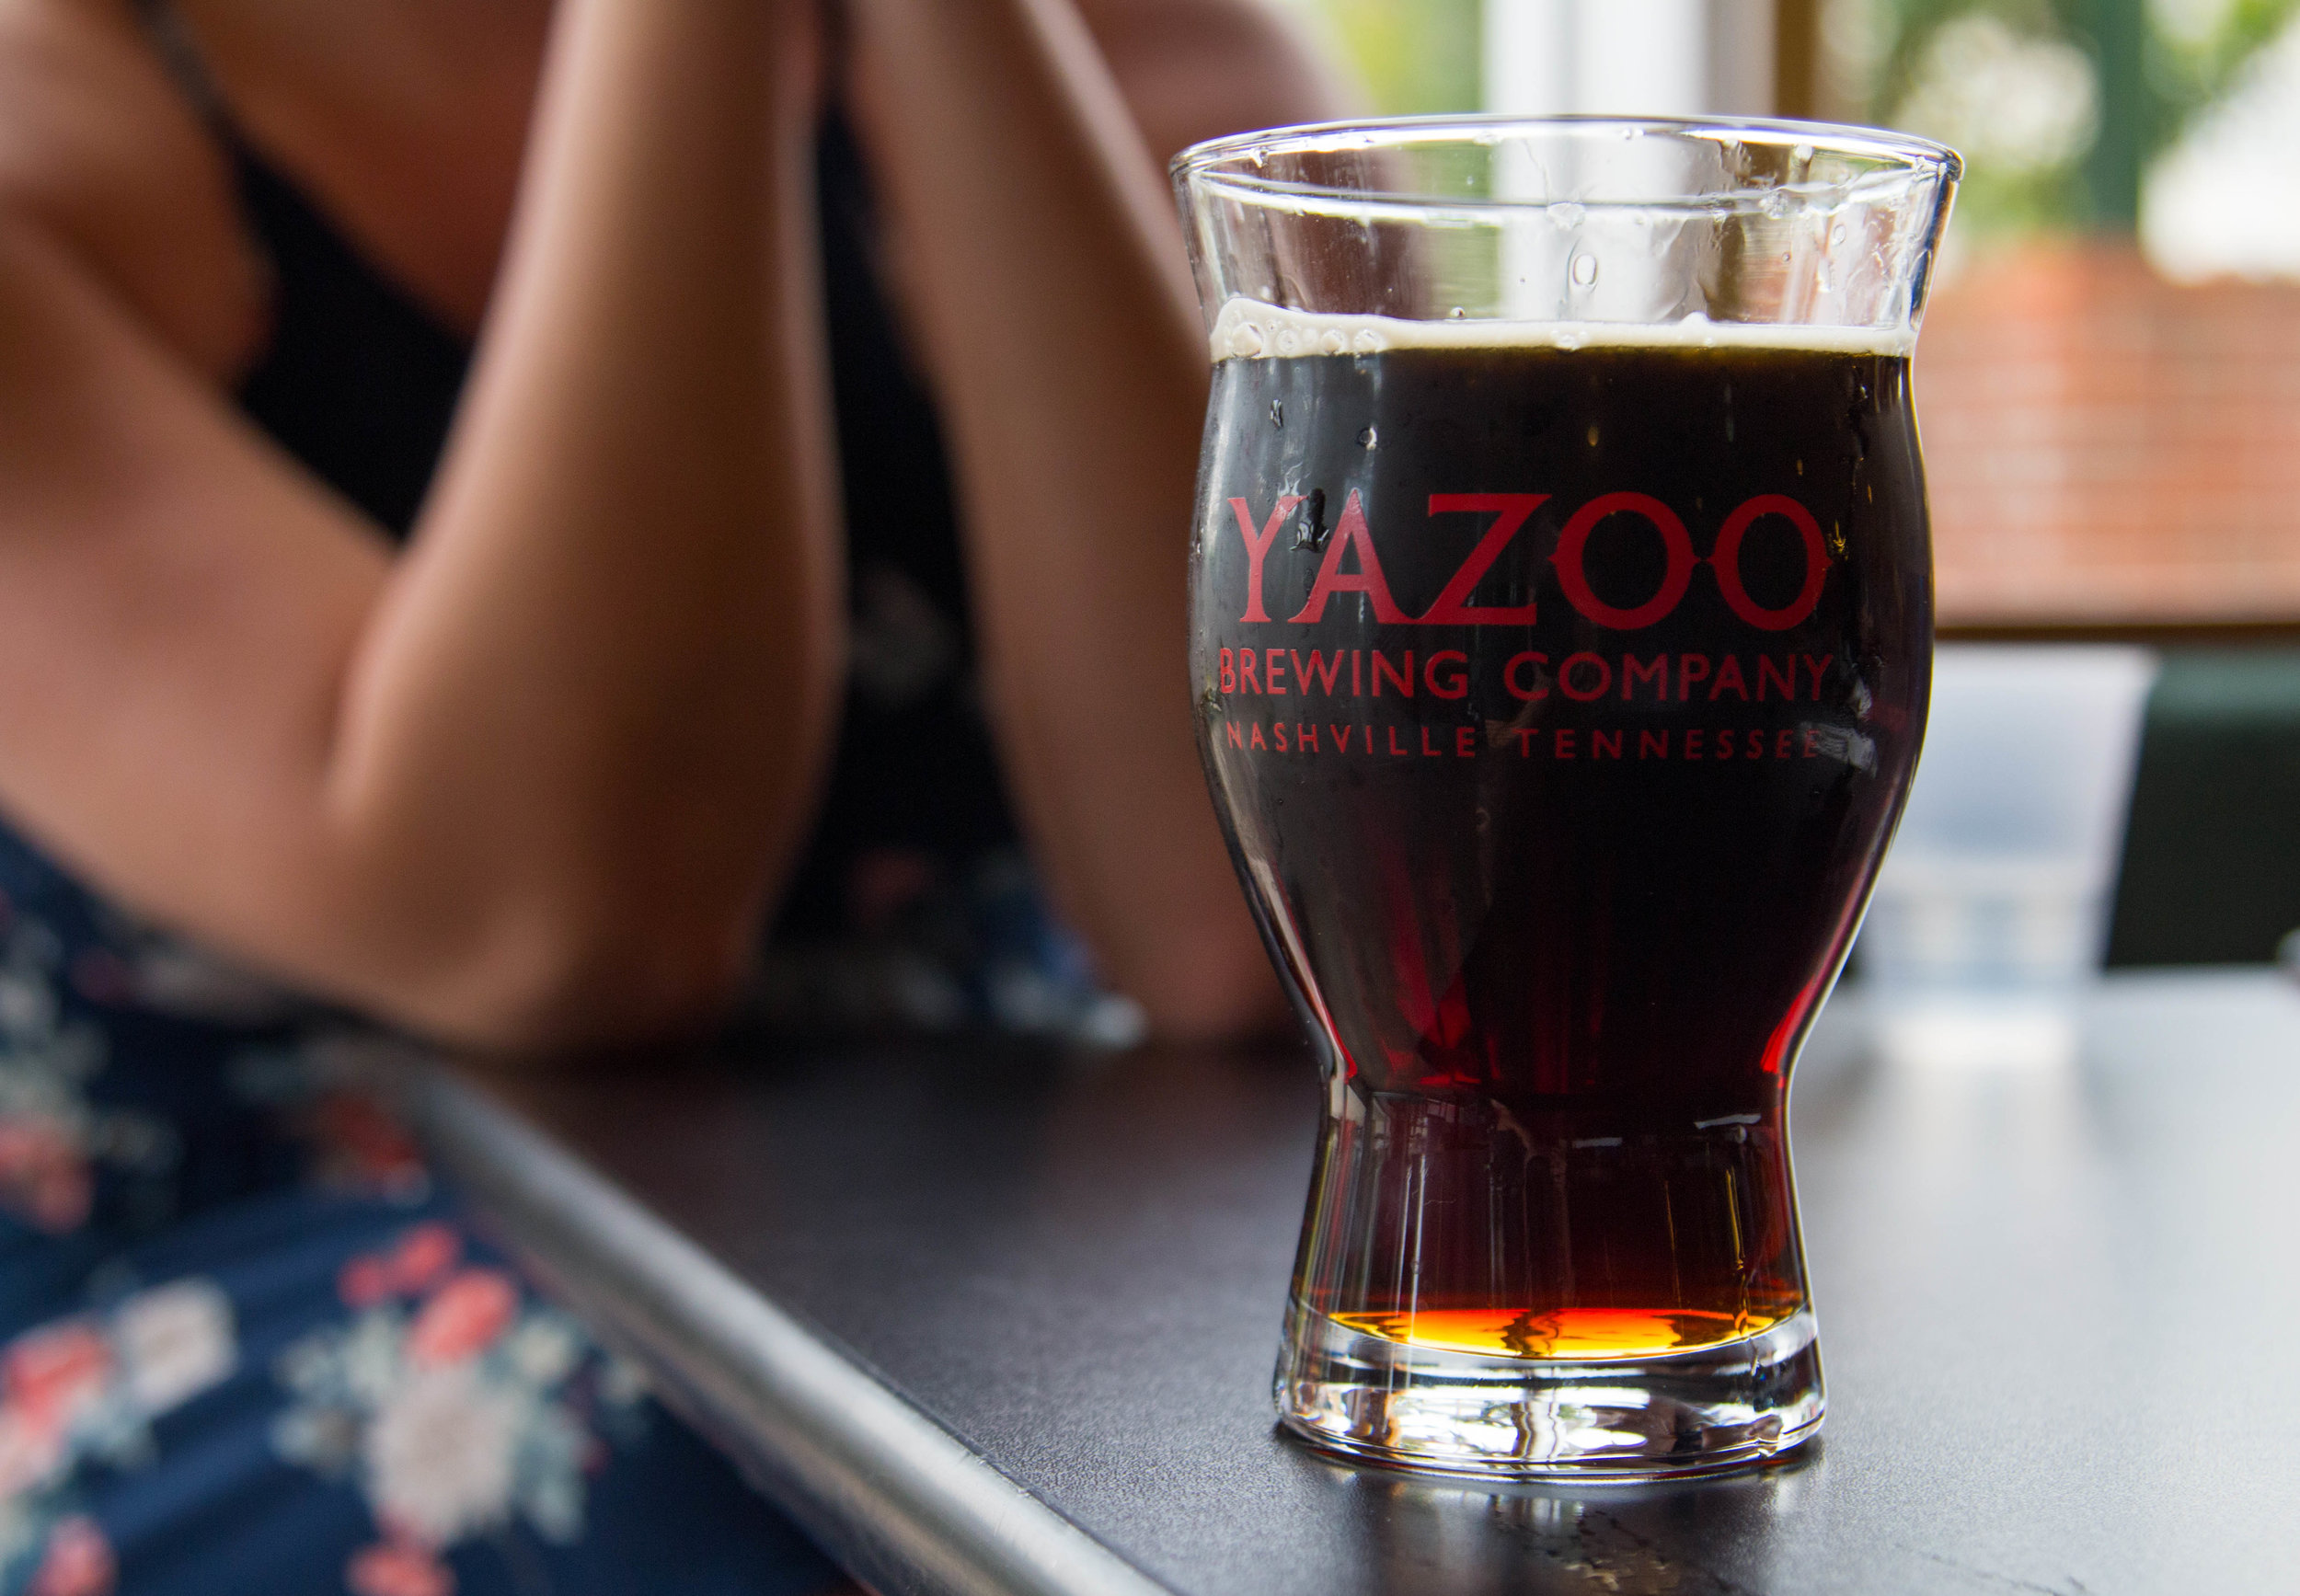 DETOUR: Nashville, TN – Yazoo Brewing